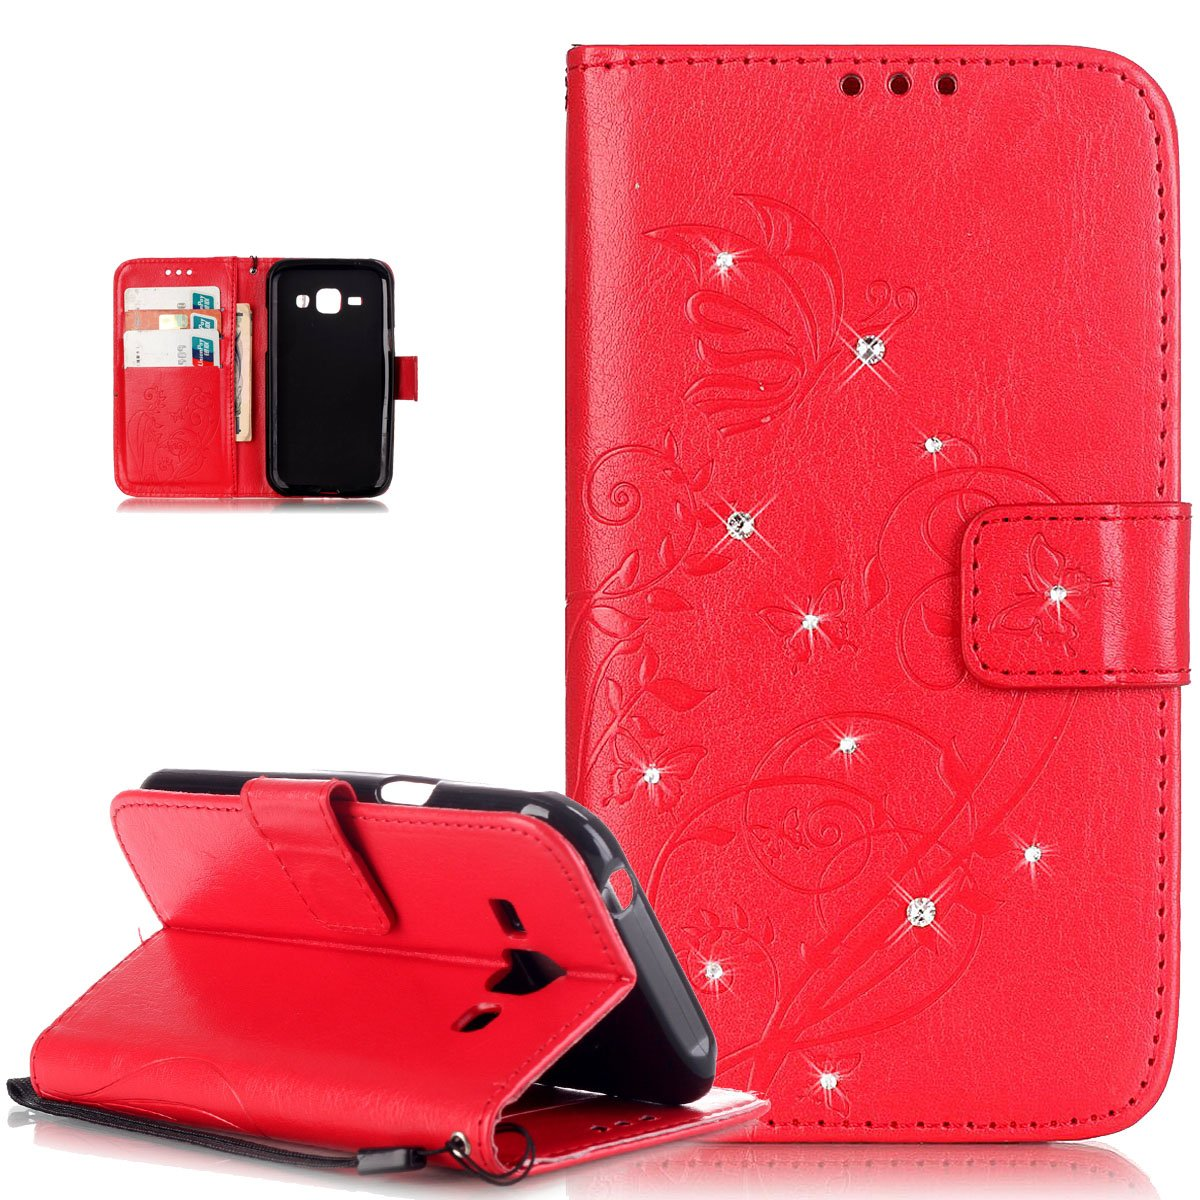 Galaxy J1 Case,Galaxy J1 Cover,ikasus Rhinestone Bing Glitter Diamond Embossing Flower Vines Butterflies Flip Premium PU Leather Fold Wallet Pouch Case Wallet Flip Cover Bookstyle Magnetic Closure with Card Slots & Stand Function Protective Case Cover